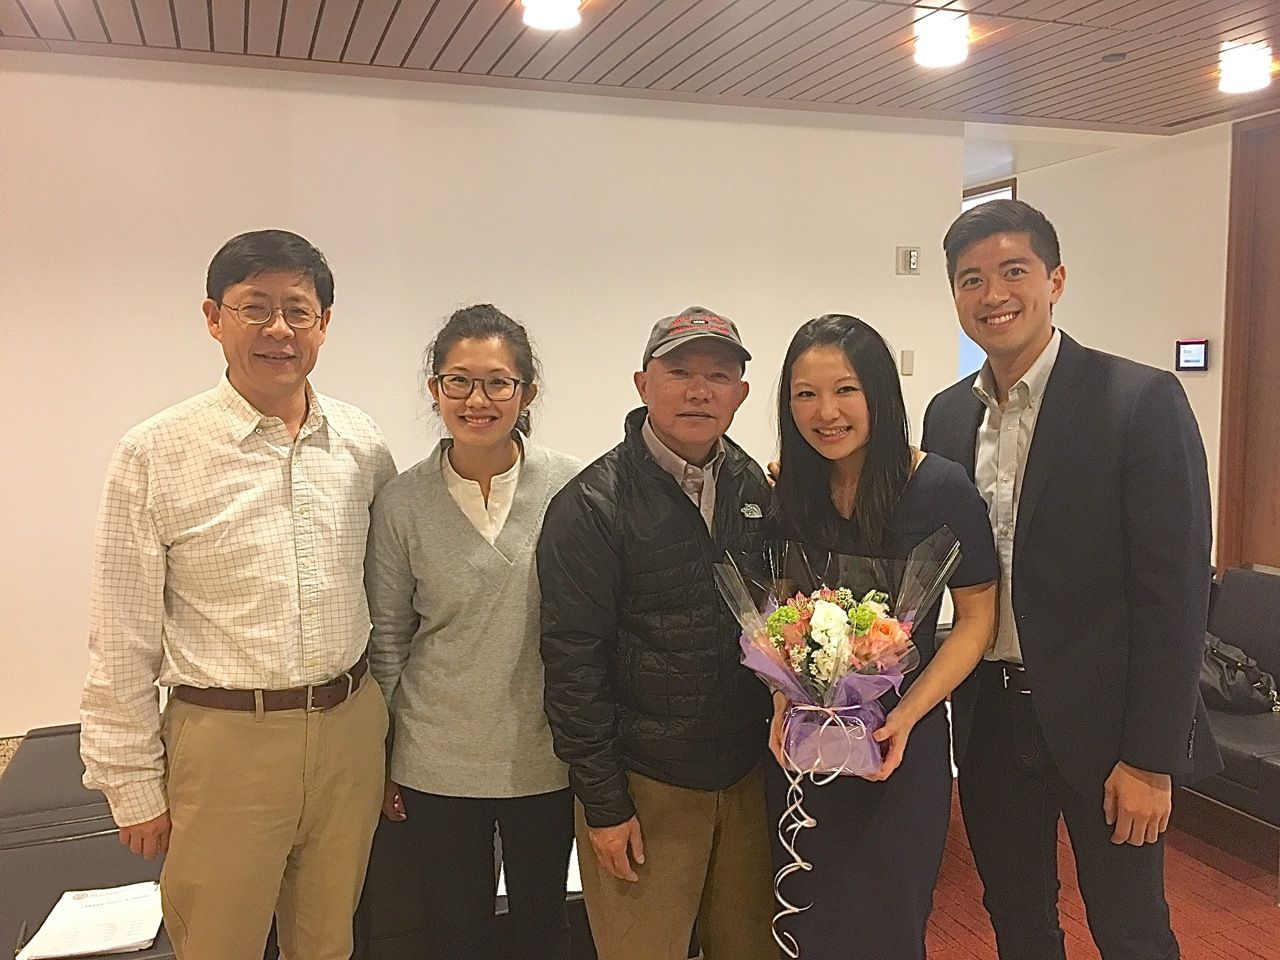 Yueming Li, Danica's sister and father, Danica, and Danica's fiance after her thesis defense.